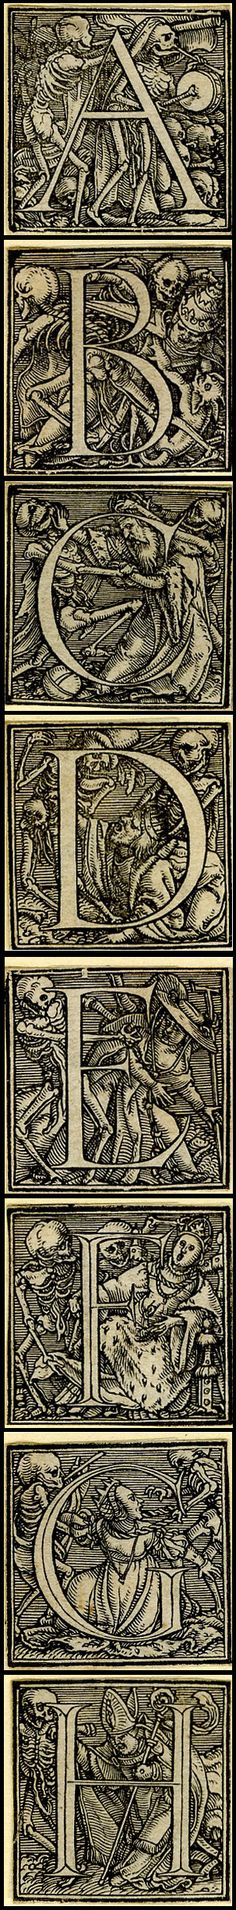 ...from Holbein's Dance of Death Alphabet. © The Trustees of the British Museum http://www.britishmuseum.org